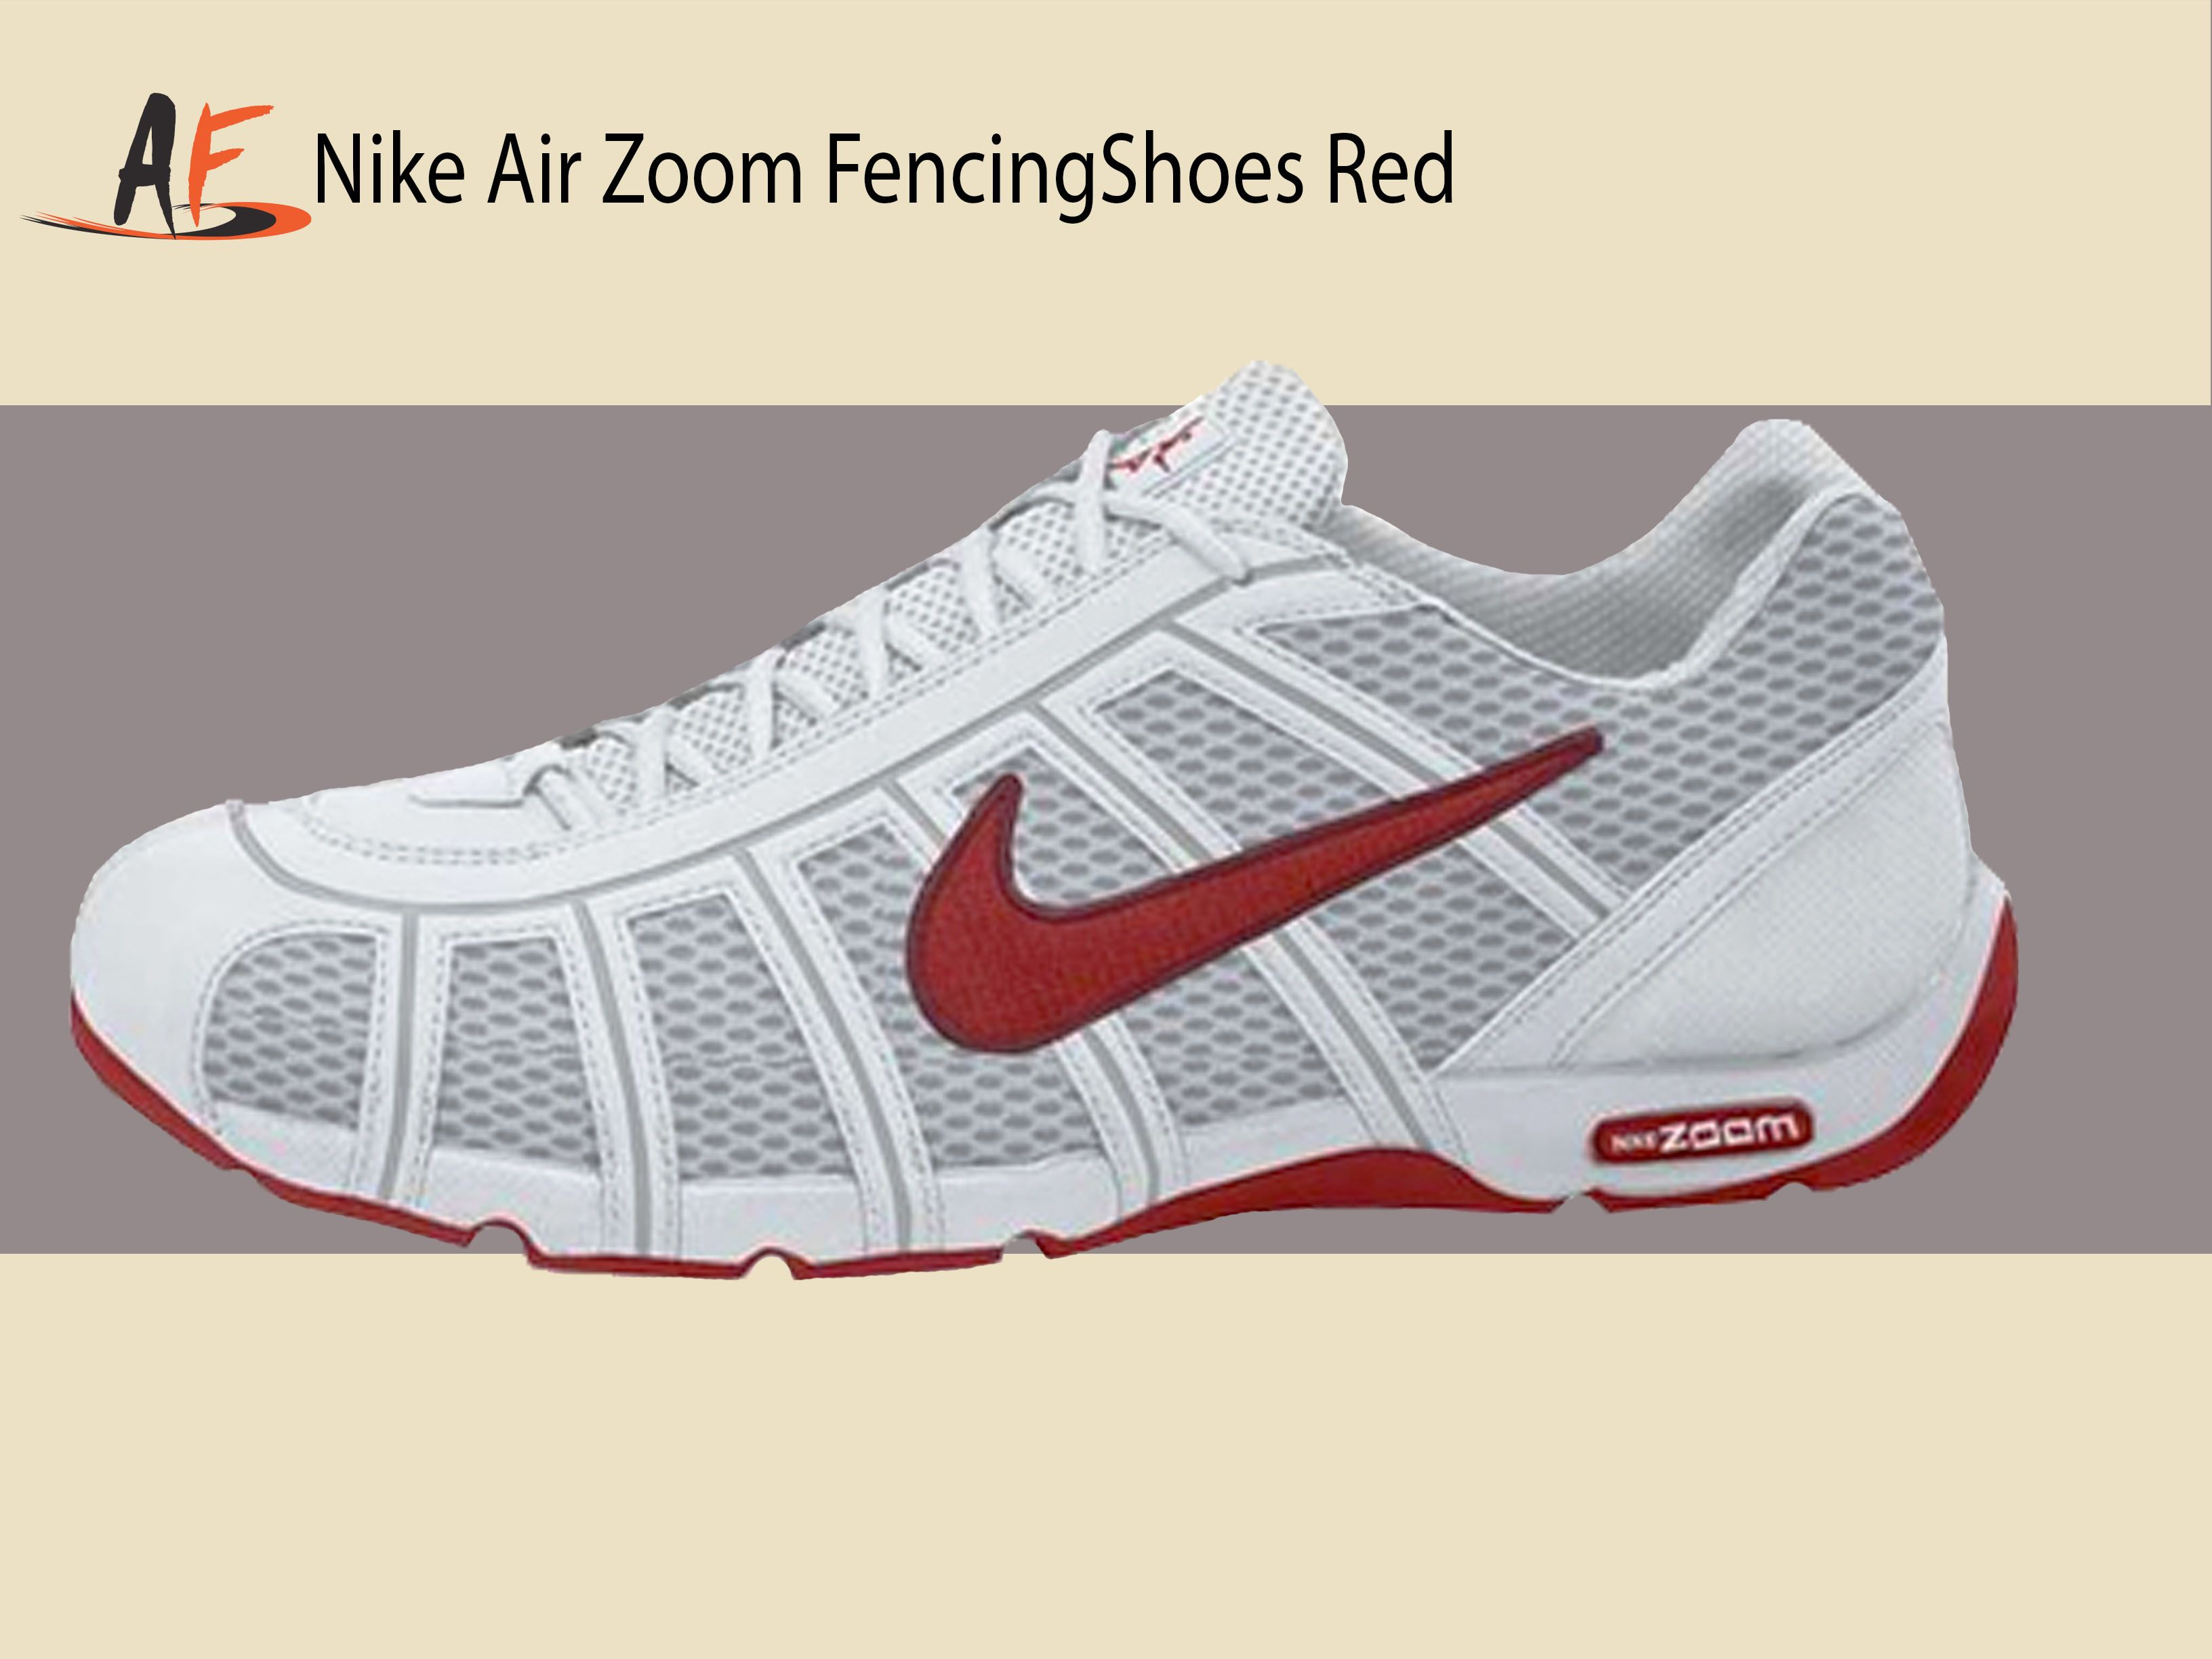 Nike Air Zoom Fencing Shoes WhiteSport Red Lt Graphite (160